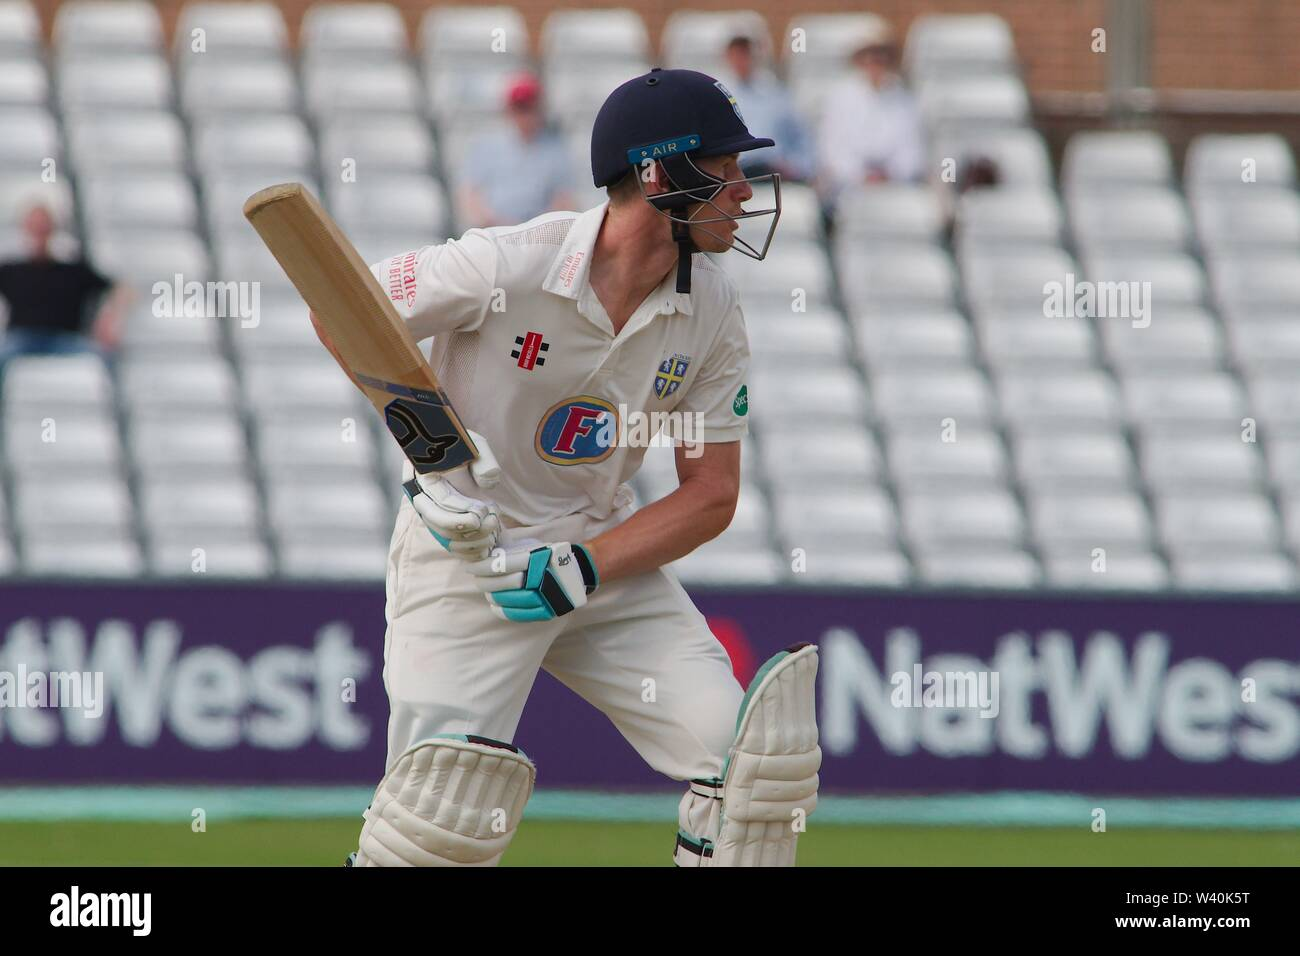 Chester le Street, England, 15 July 2019. Cameron Bancroft batting for Durham during their Specsavers County Championship match between Durham and Worcestershire at the Emirates Riverside, Chester le Street. - Stock Image